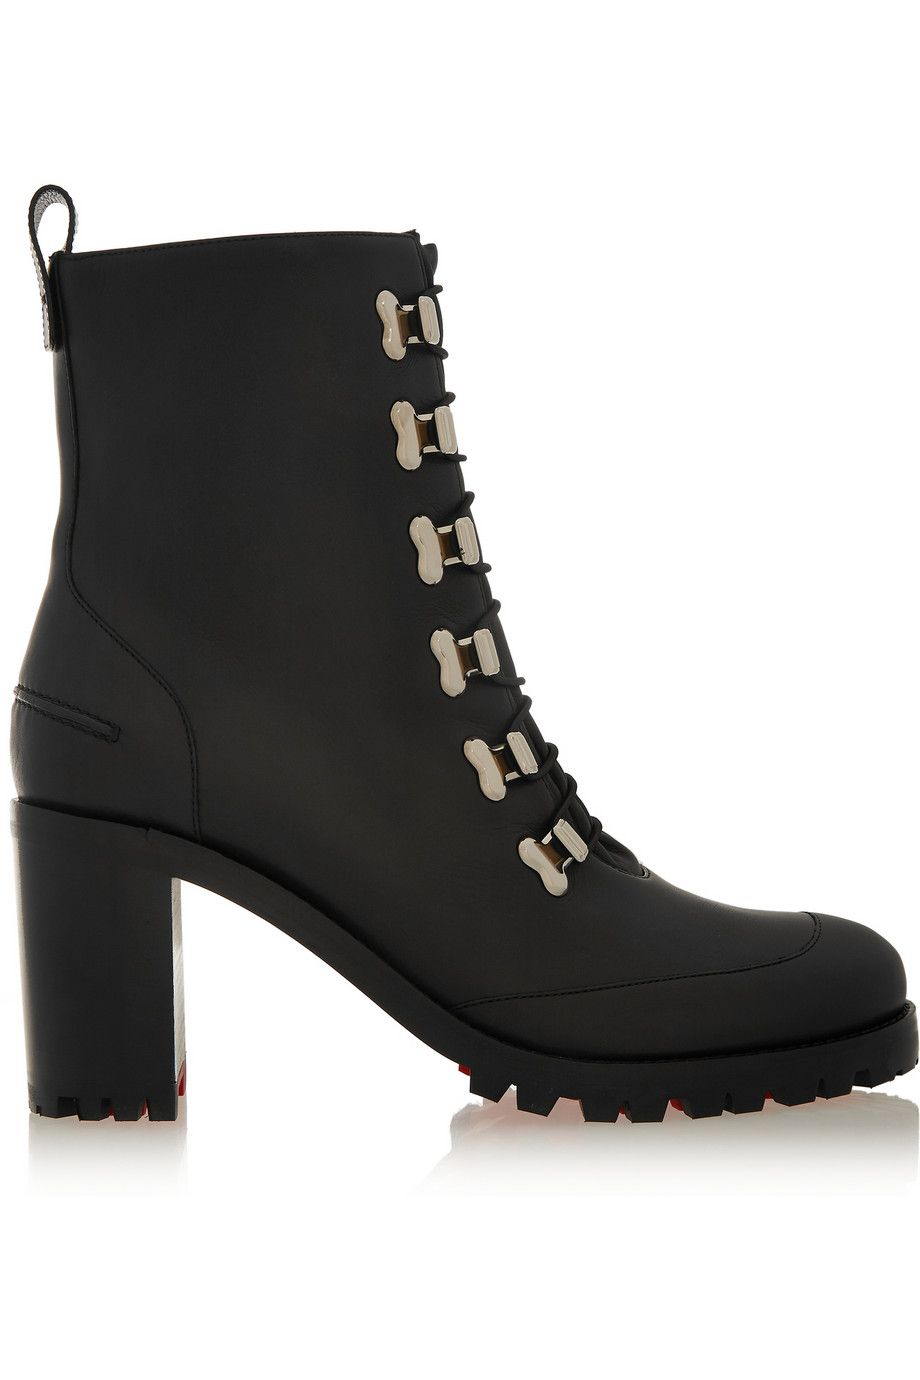 "<p>Christian Louboutin Country Croche 70 Leather Boots, $1,295; <u><a href=""http://www.net-a-porter.com/us/en/product/606916/christian_louboutin/country-croche-70-leather-boots"" target=""_blank"">net-a-porter.com</a></u></p>"